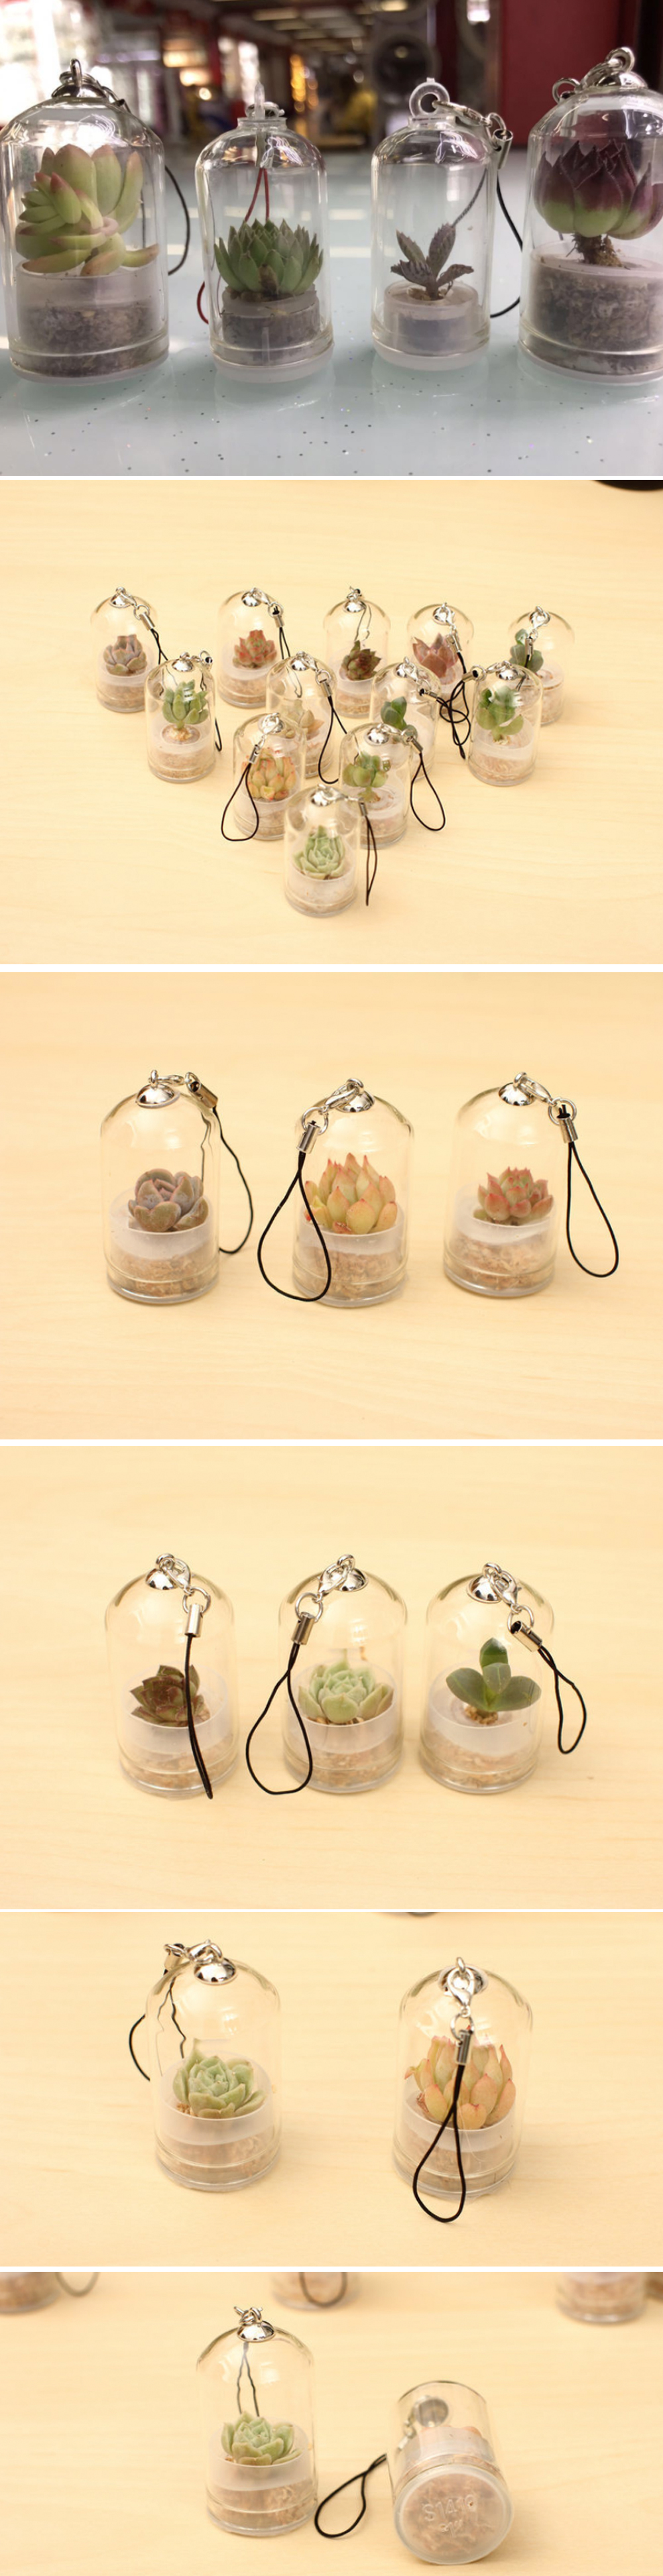 Miniature Plant Keychain Cute Mobile Greenhouse